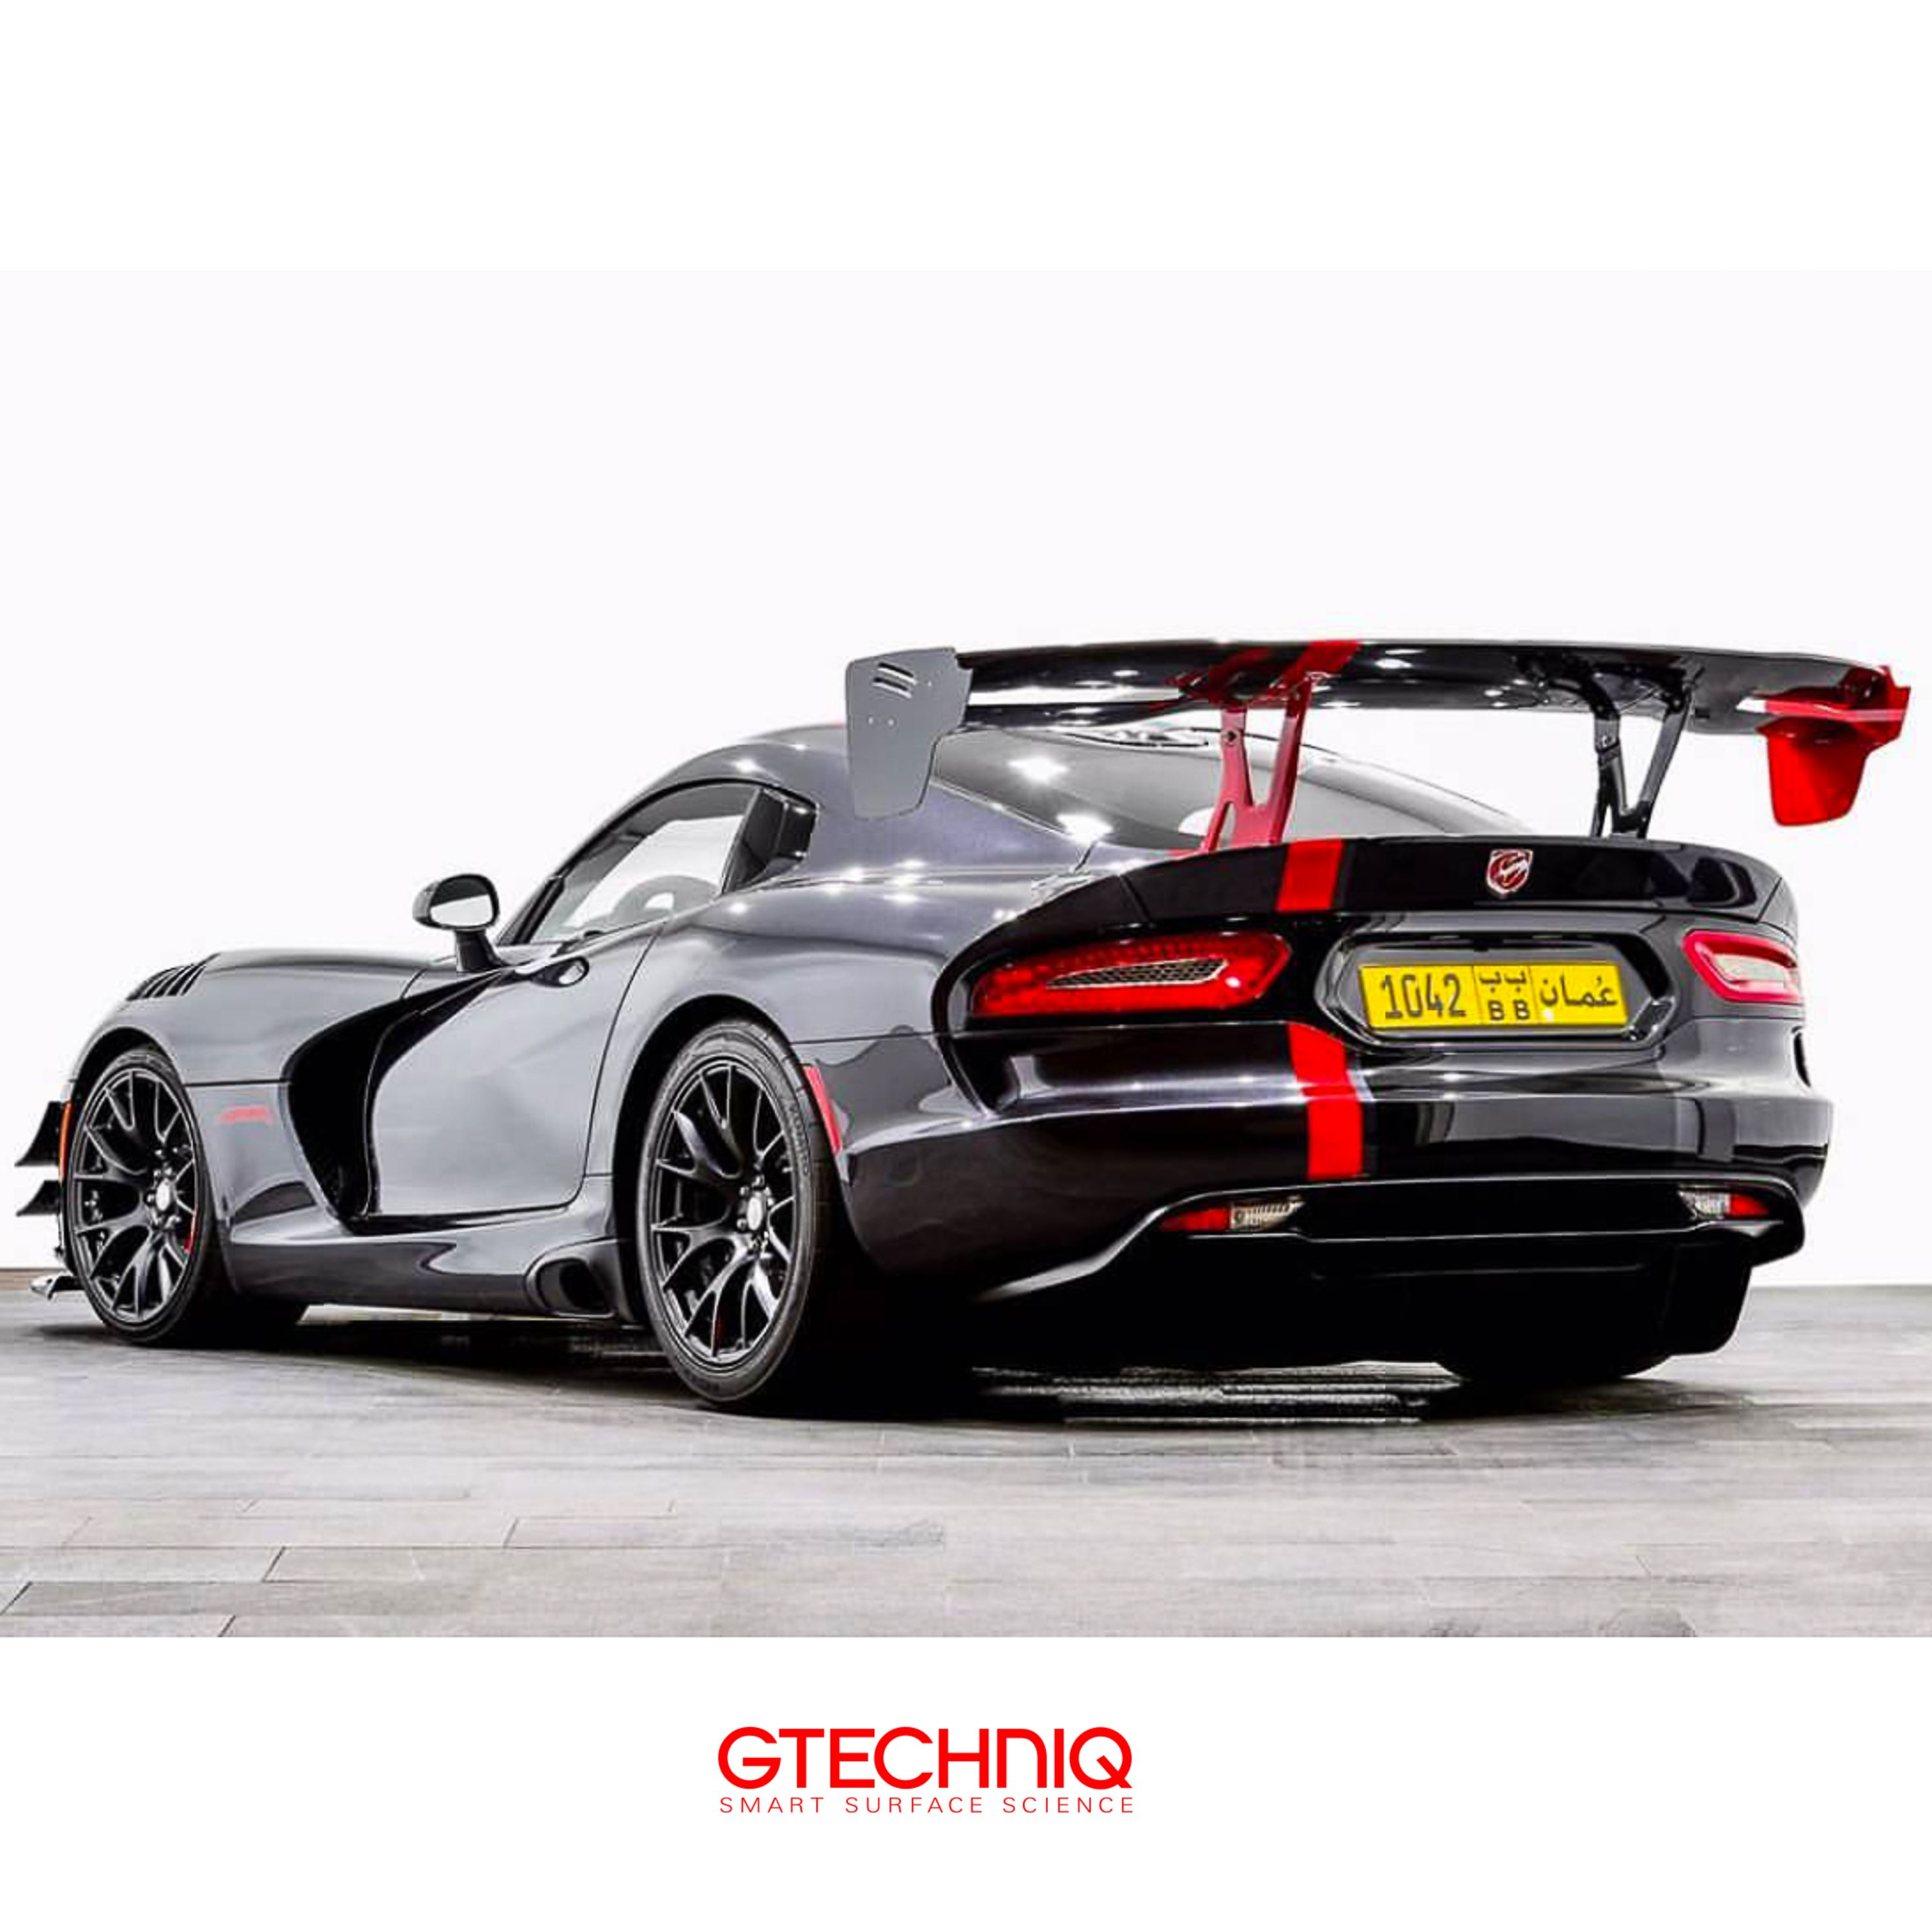 dodge viper acr protected by gtechniq and the only accredited detailer in oman autospa_oman protect